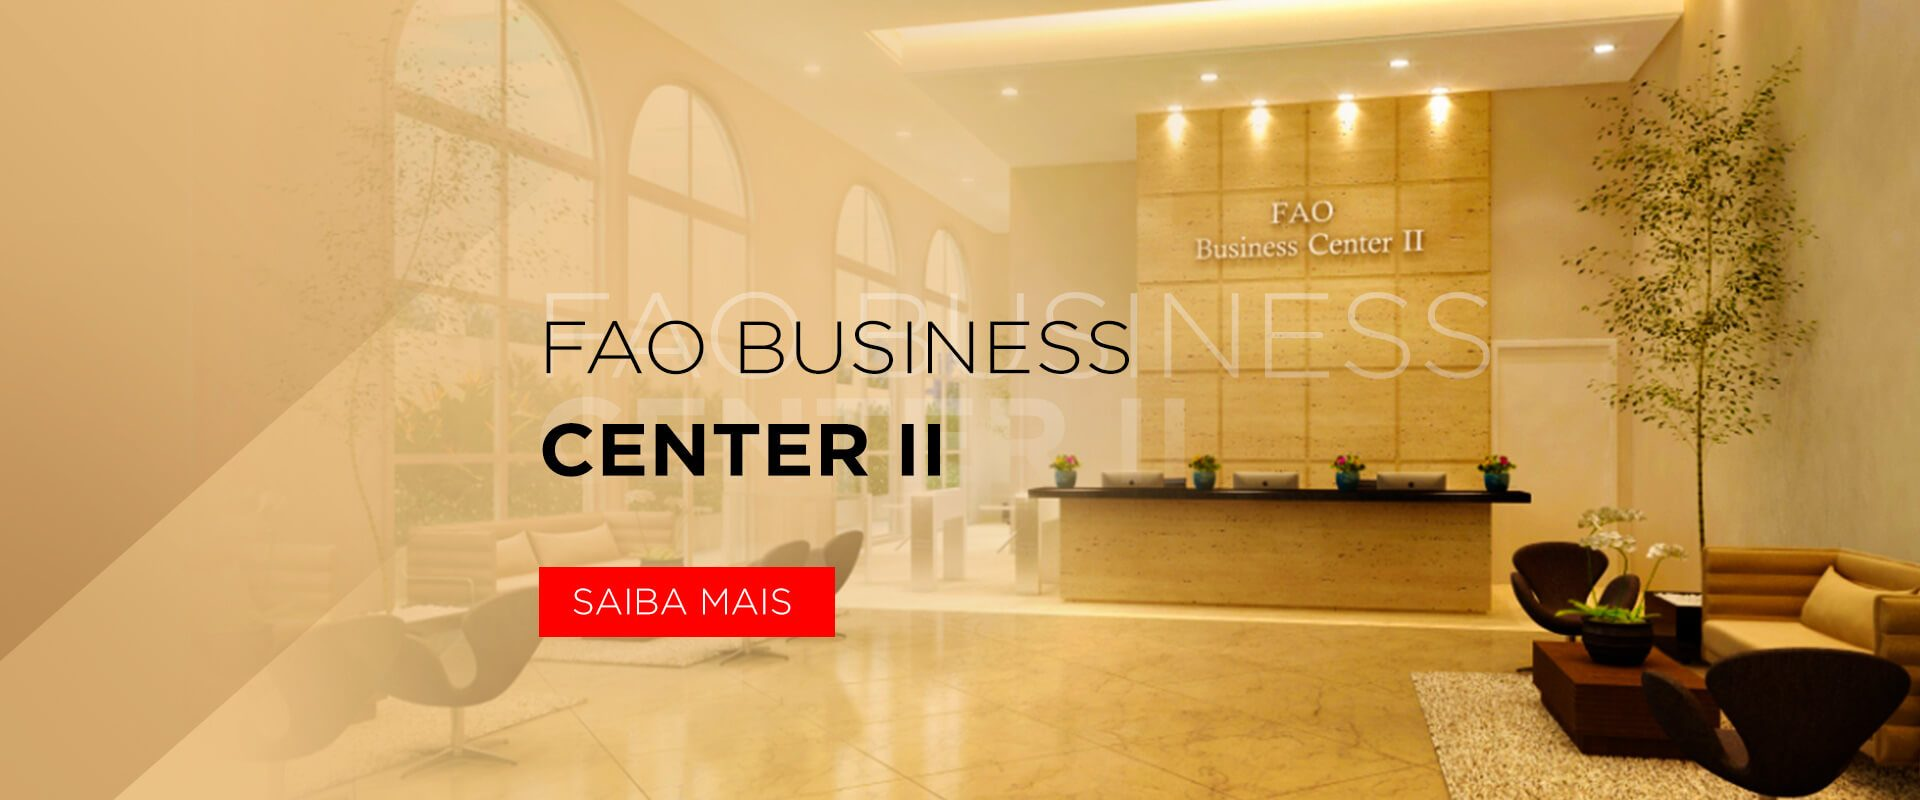 Business Center II